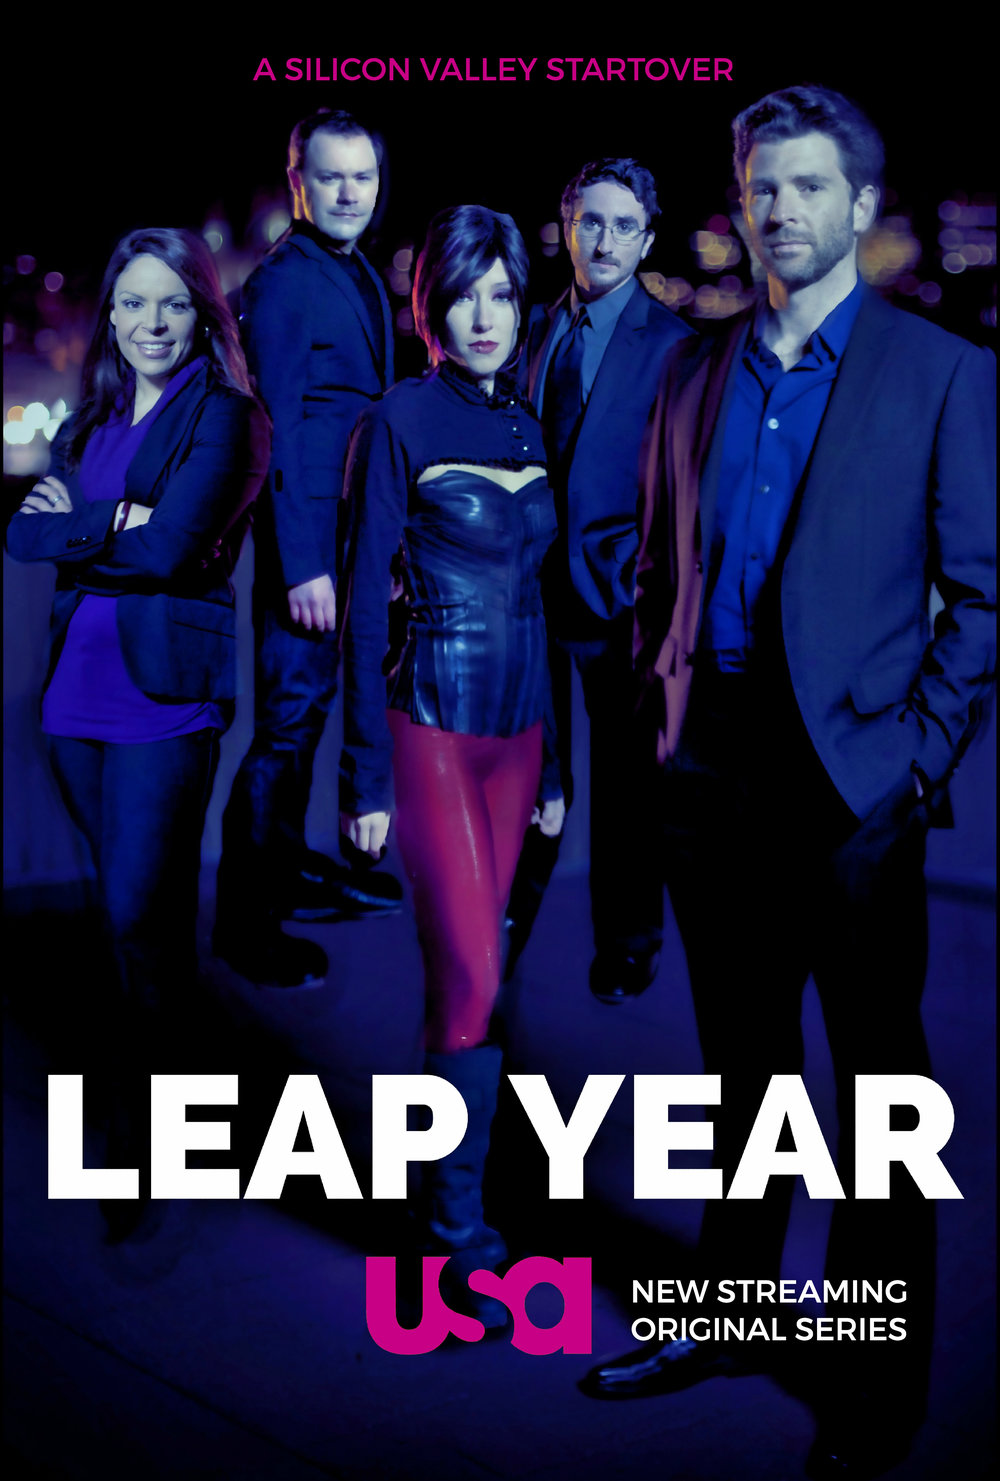 LEAP YEAR-silicon valley poster-imdb.jpg